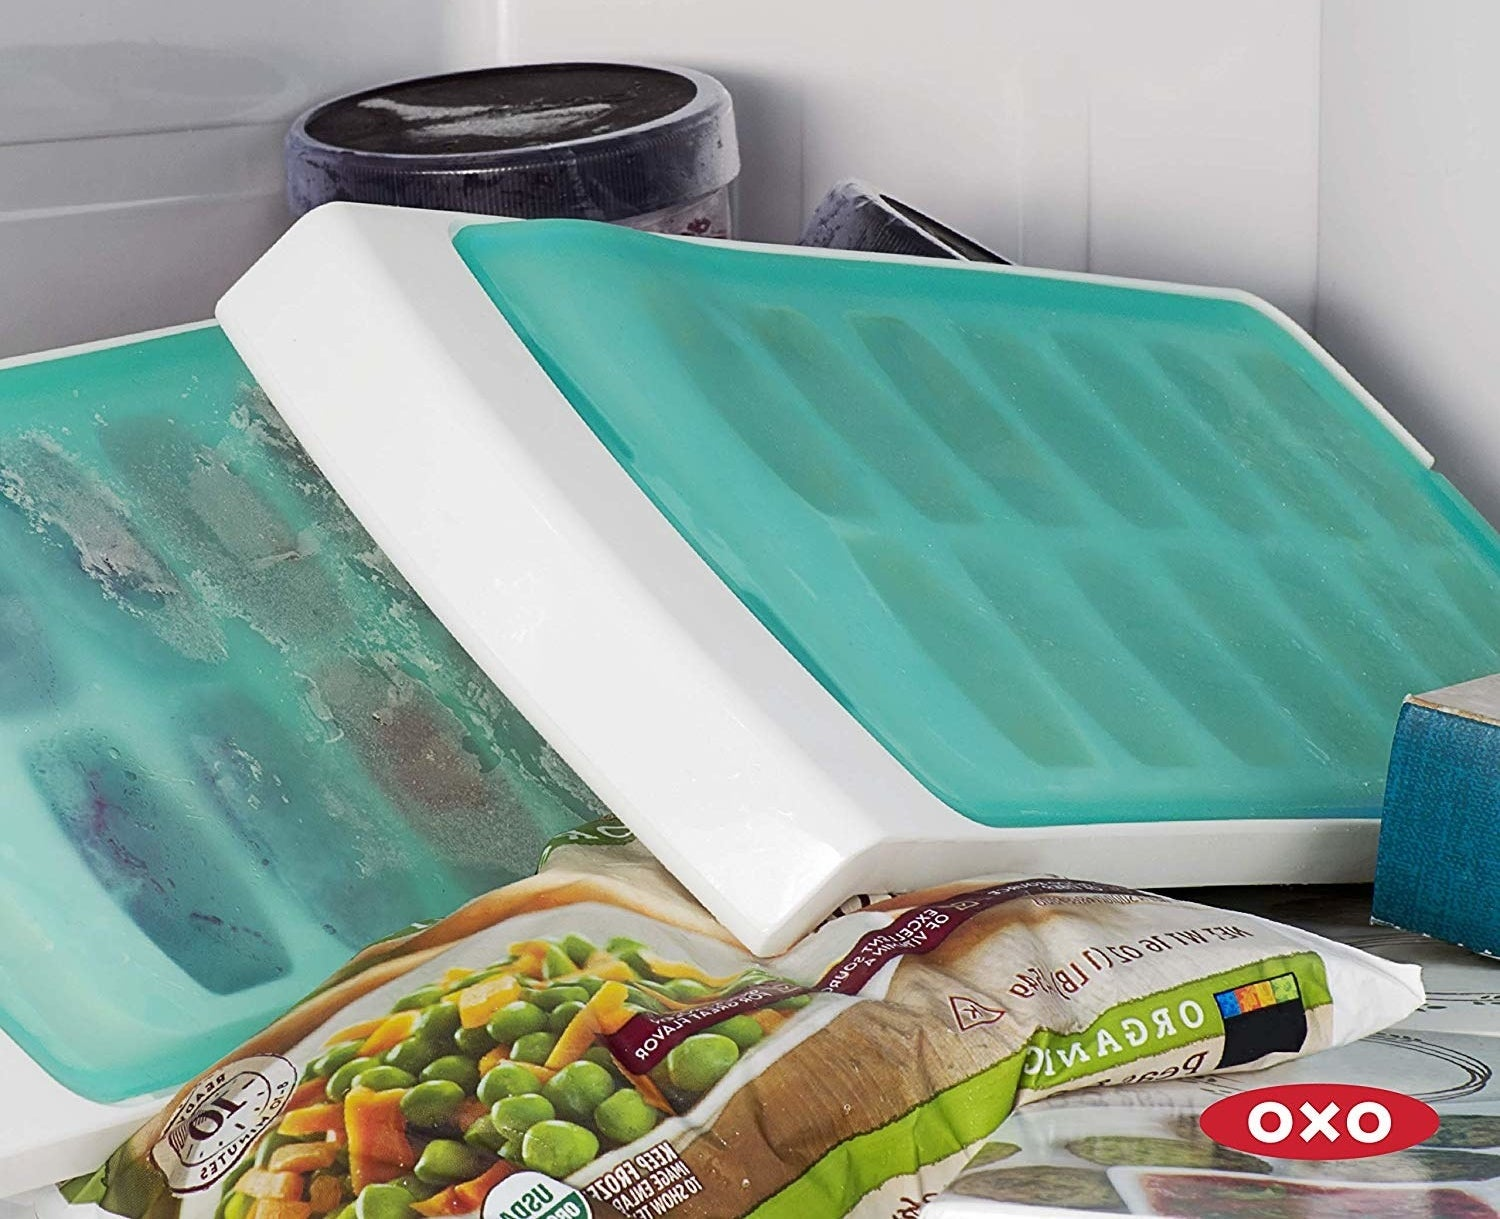 two ice trays with silicone flap covers